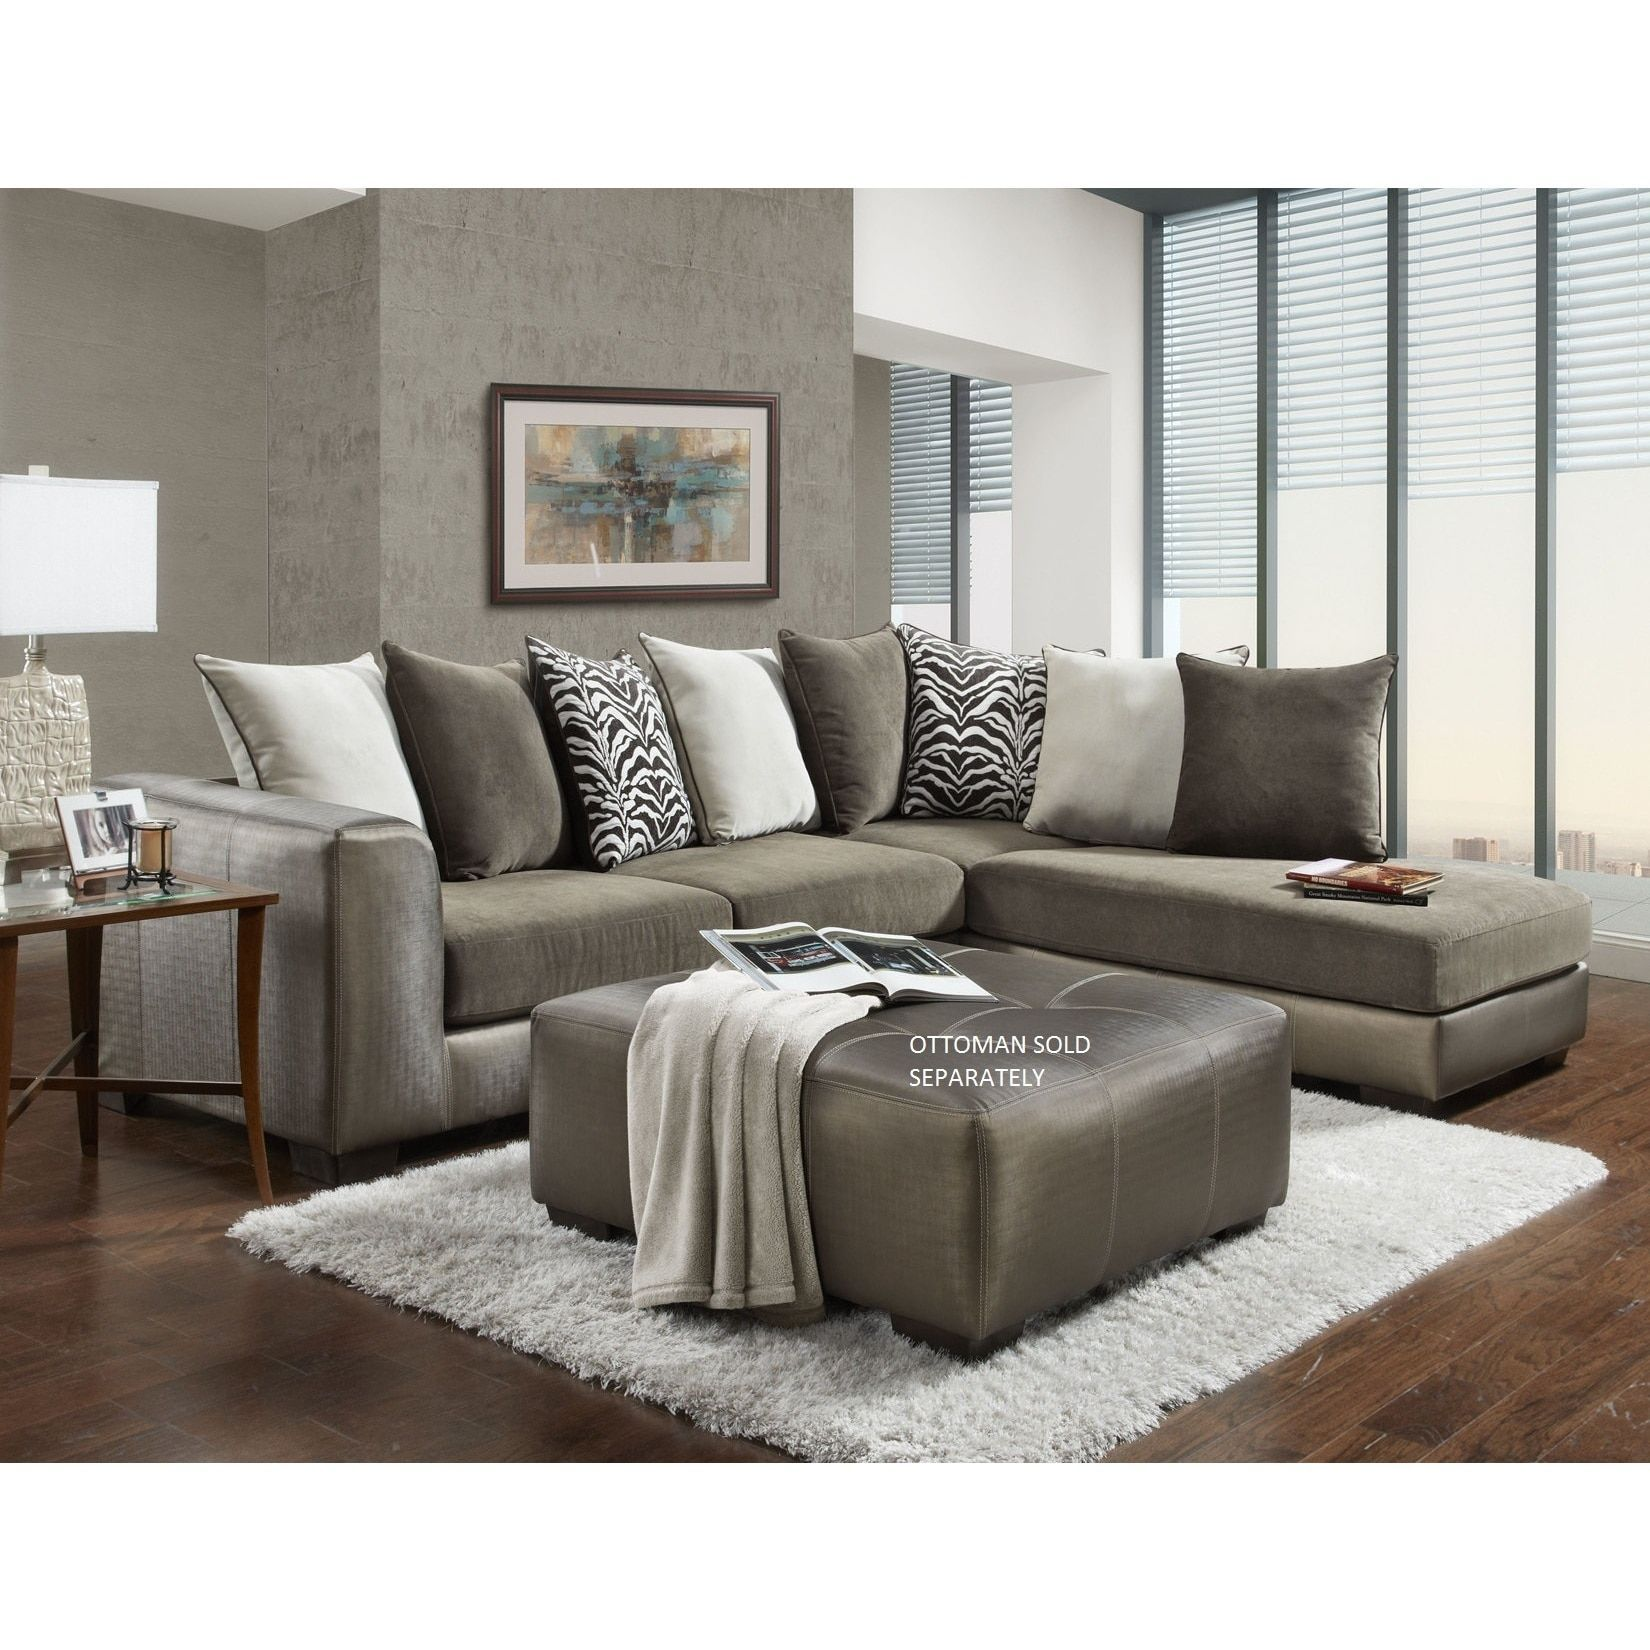 Shimmer magnetite champagne microfiber sectional sofa champagne beige fabric